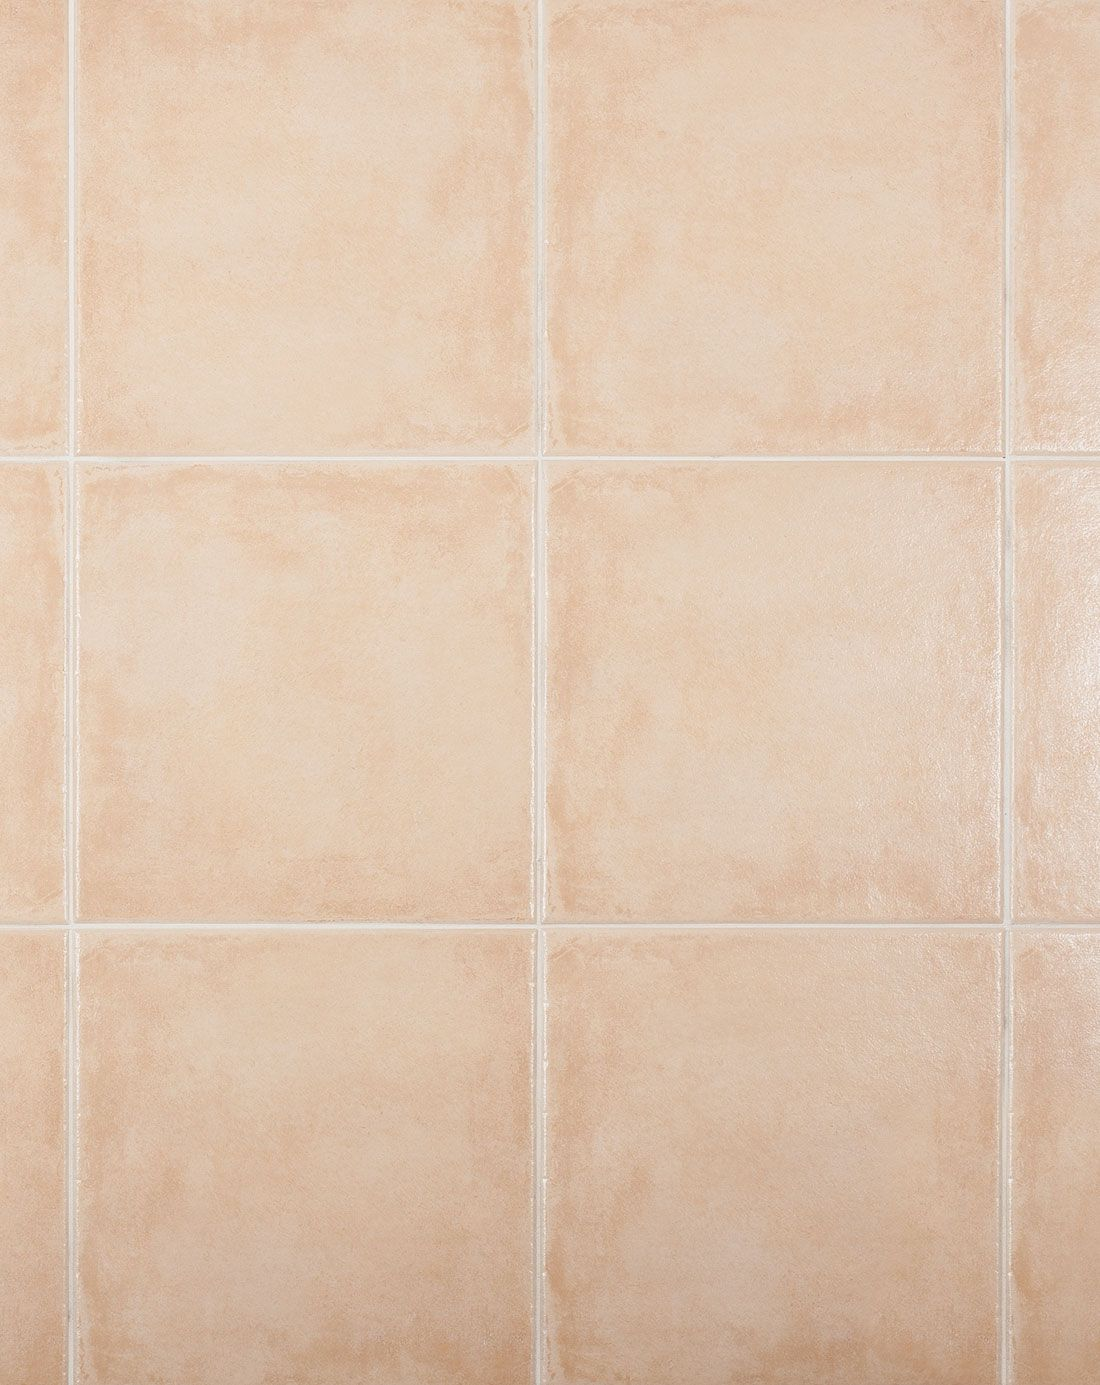 Vilamoura Beige Kitchen Floor Tiles A Light Clay Coloured Tile With